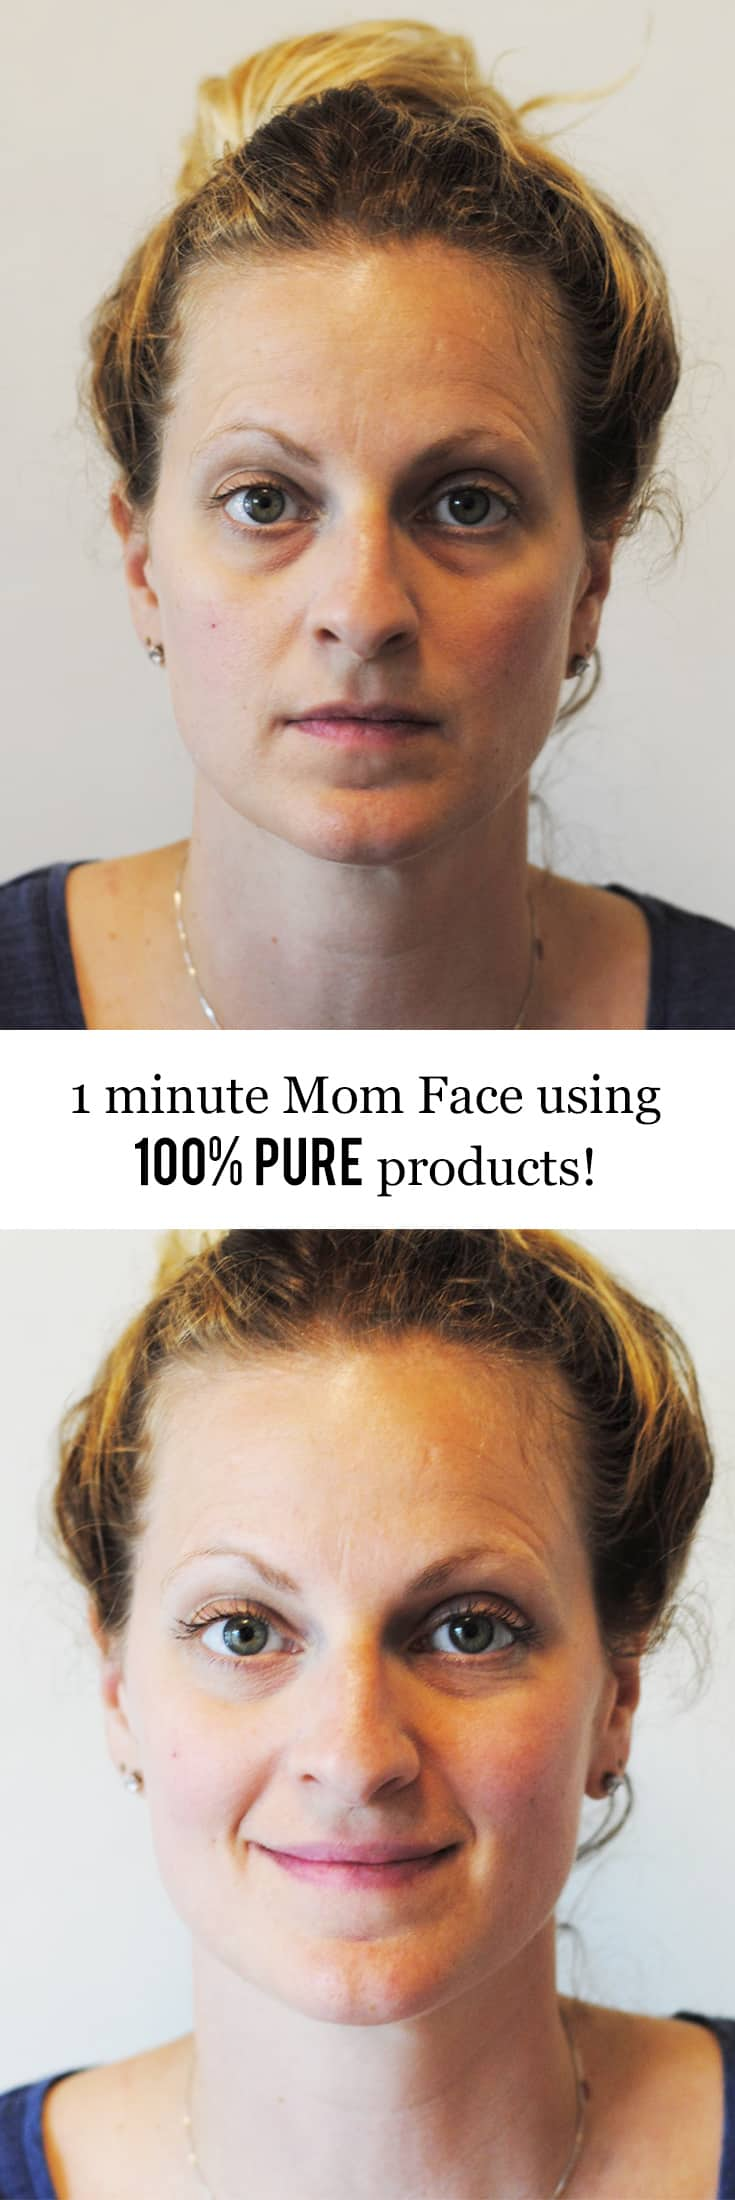 1 Minute Mom Face with 100% Pure